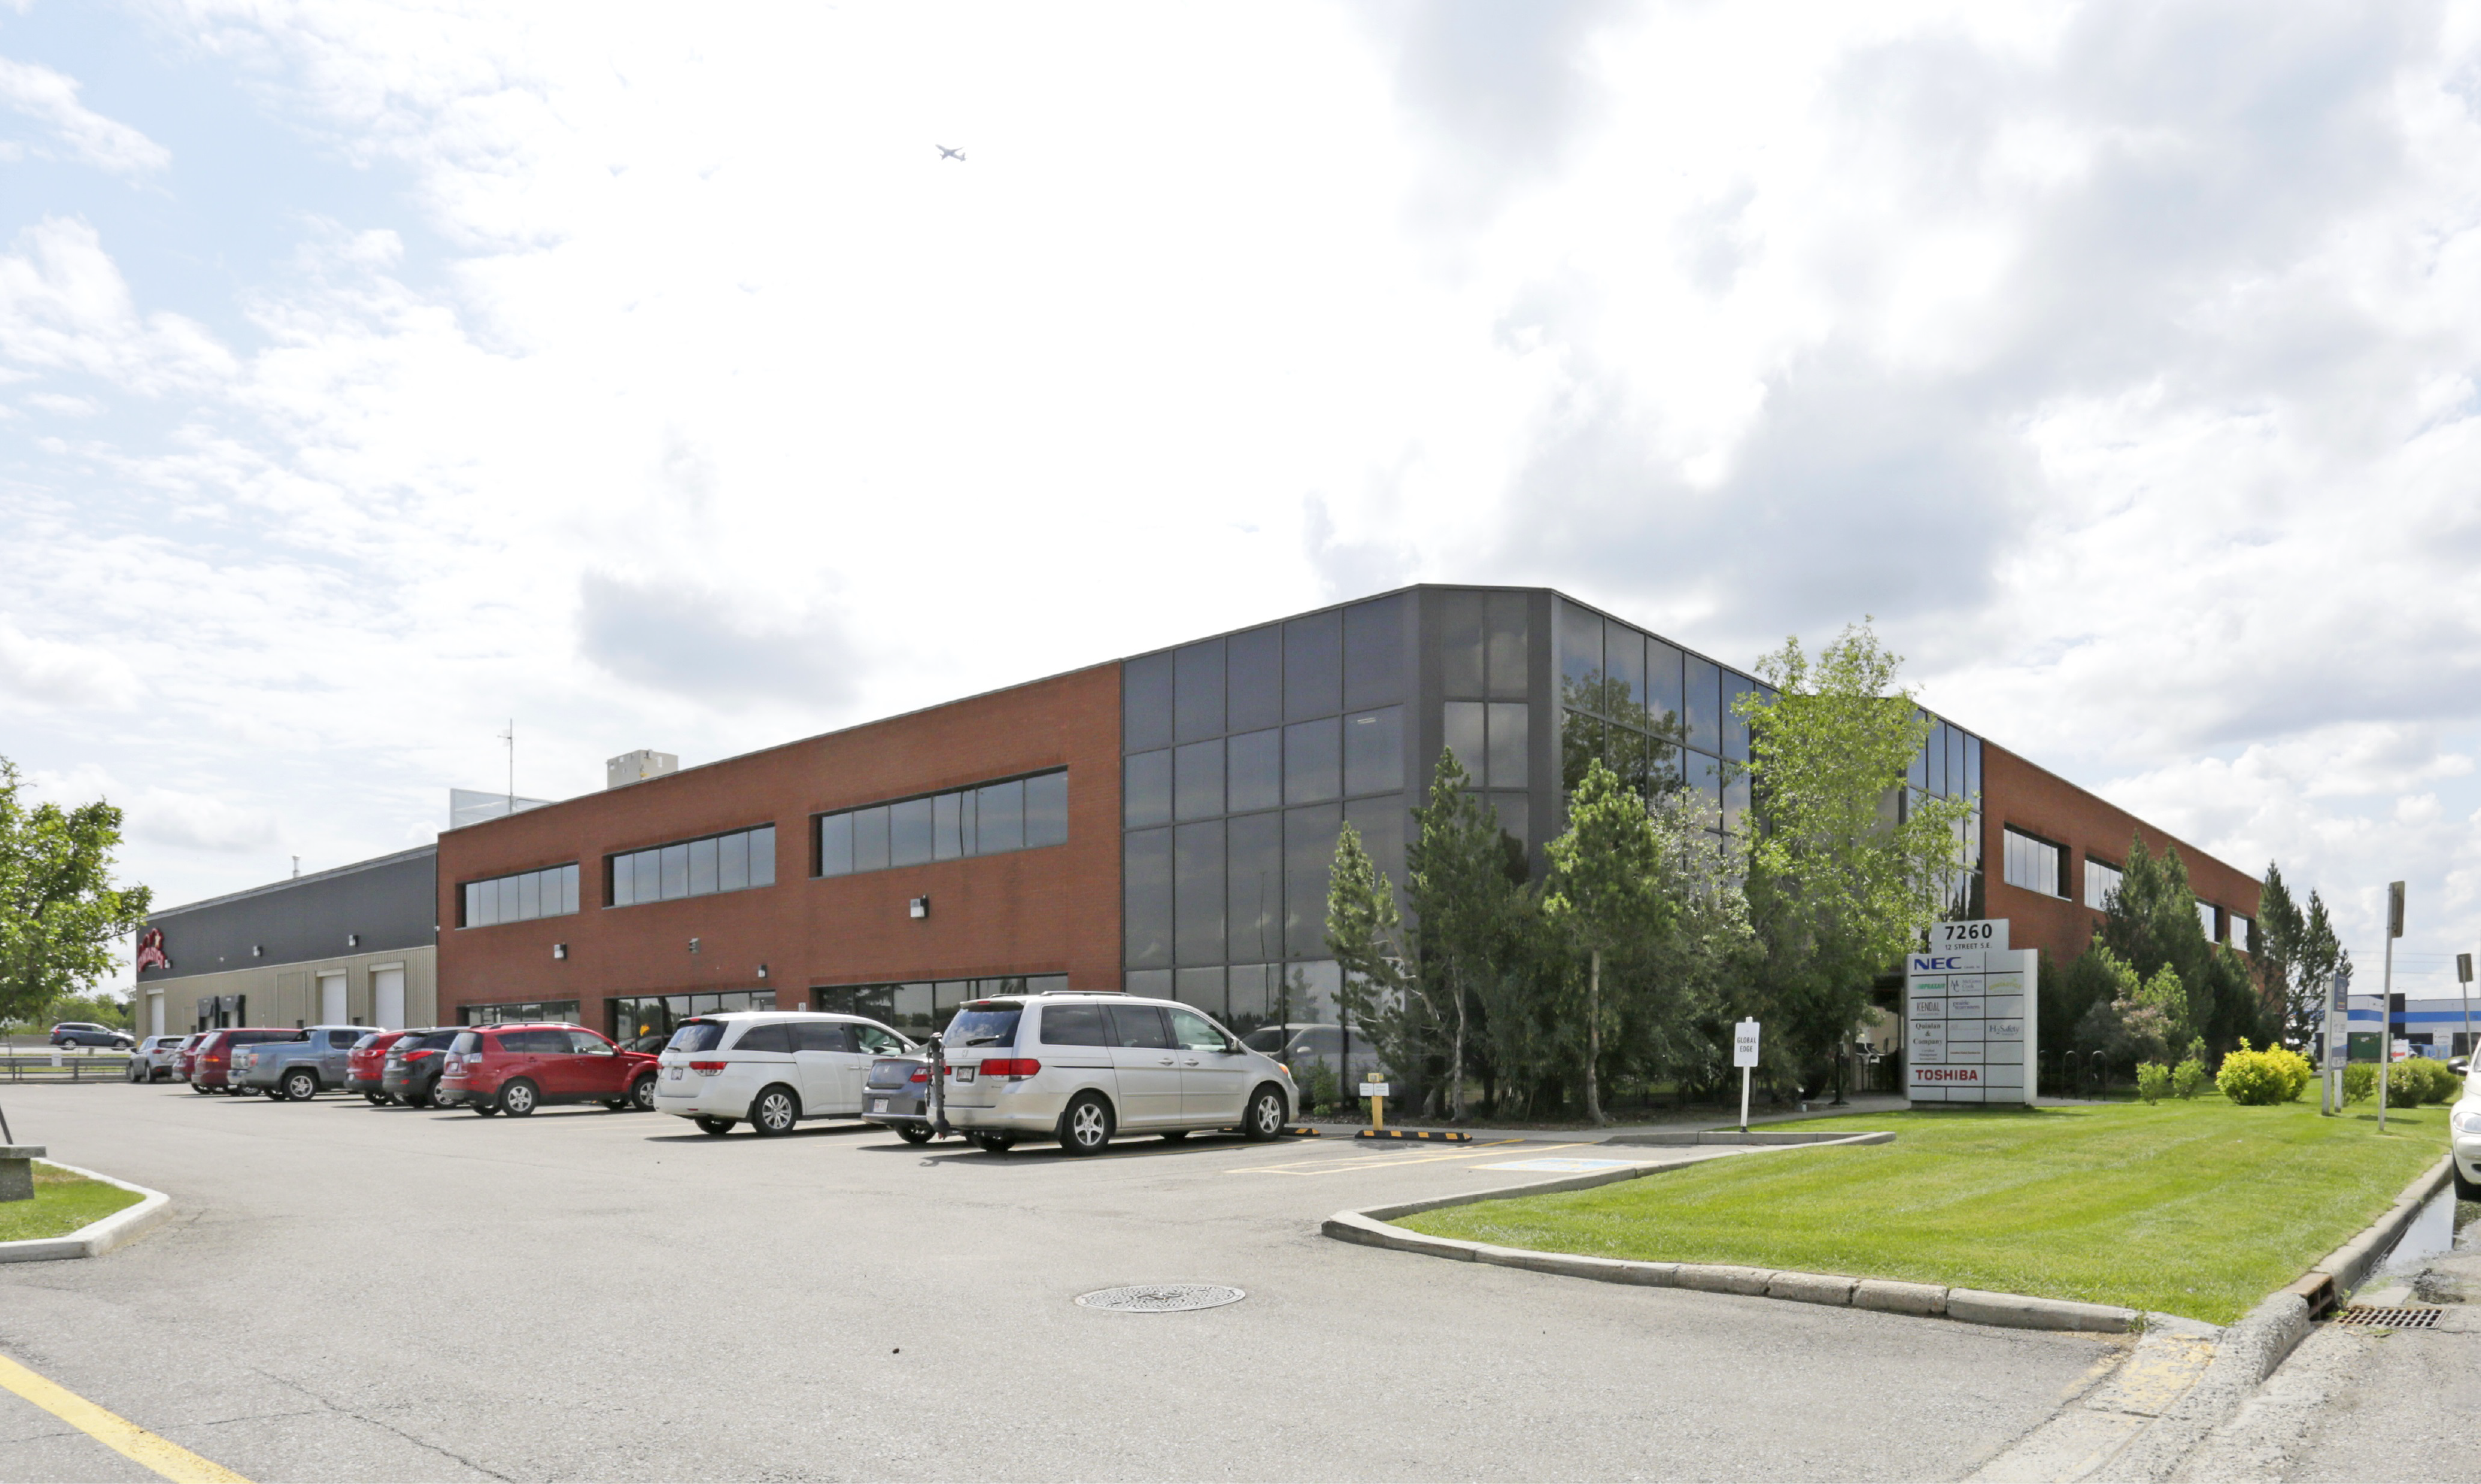 For Lease: 4,116 & 5,635 sq. ft. of Conveniently Located Office Space